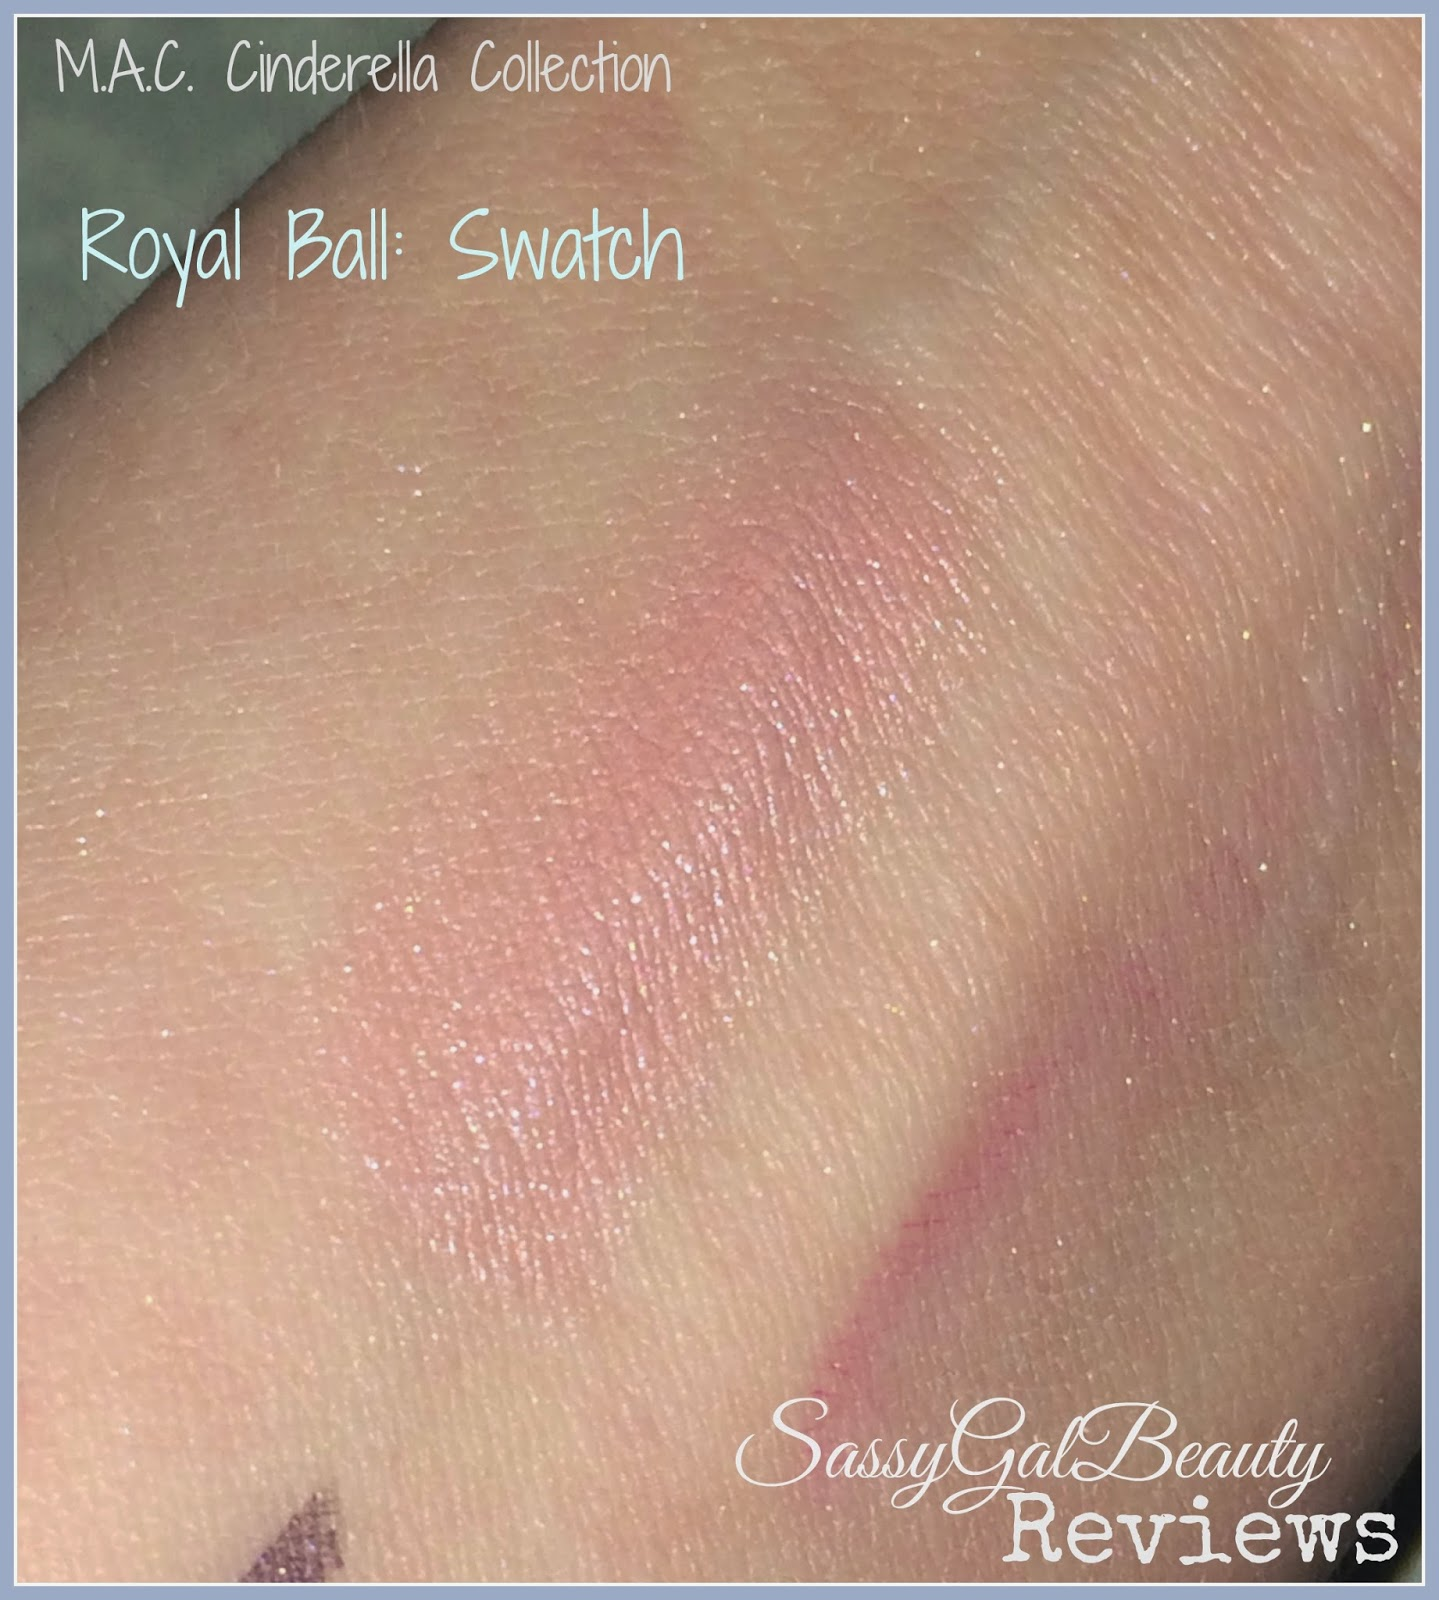 M.A.C. Cinderella Collection: Royal Ball Lipstick Swatch